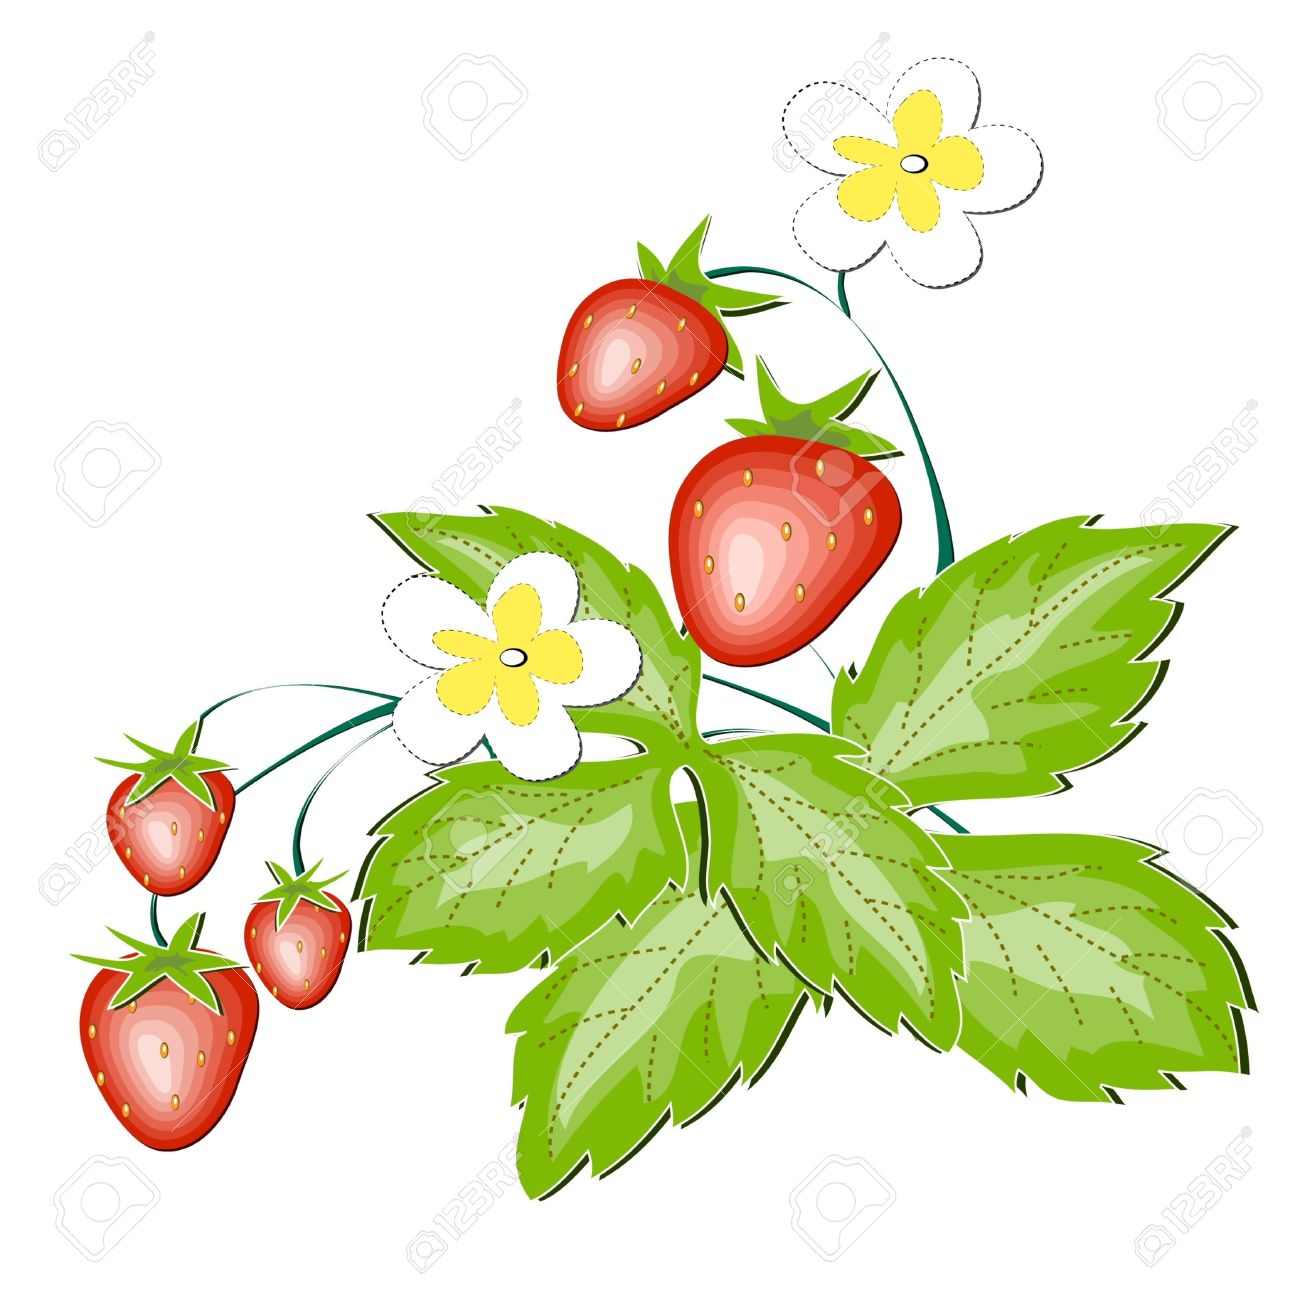 Wild strawberry clipart